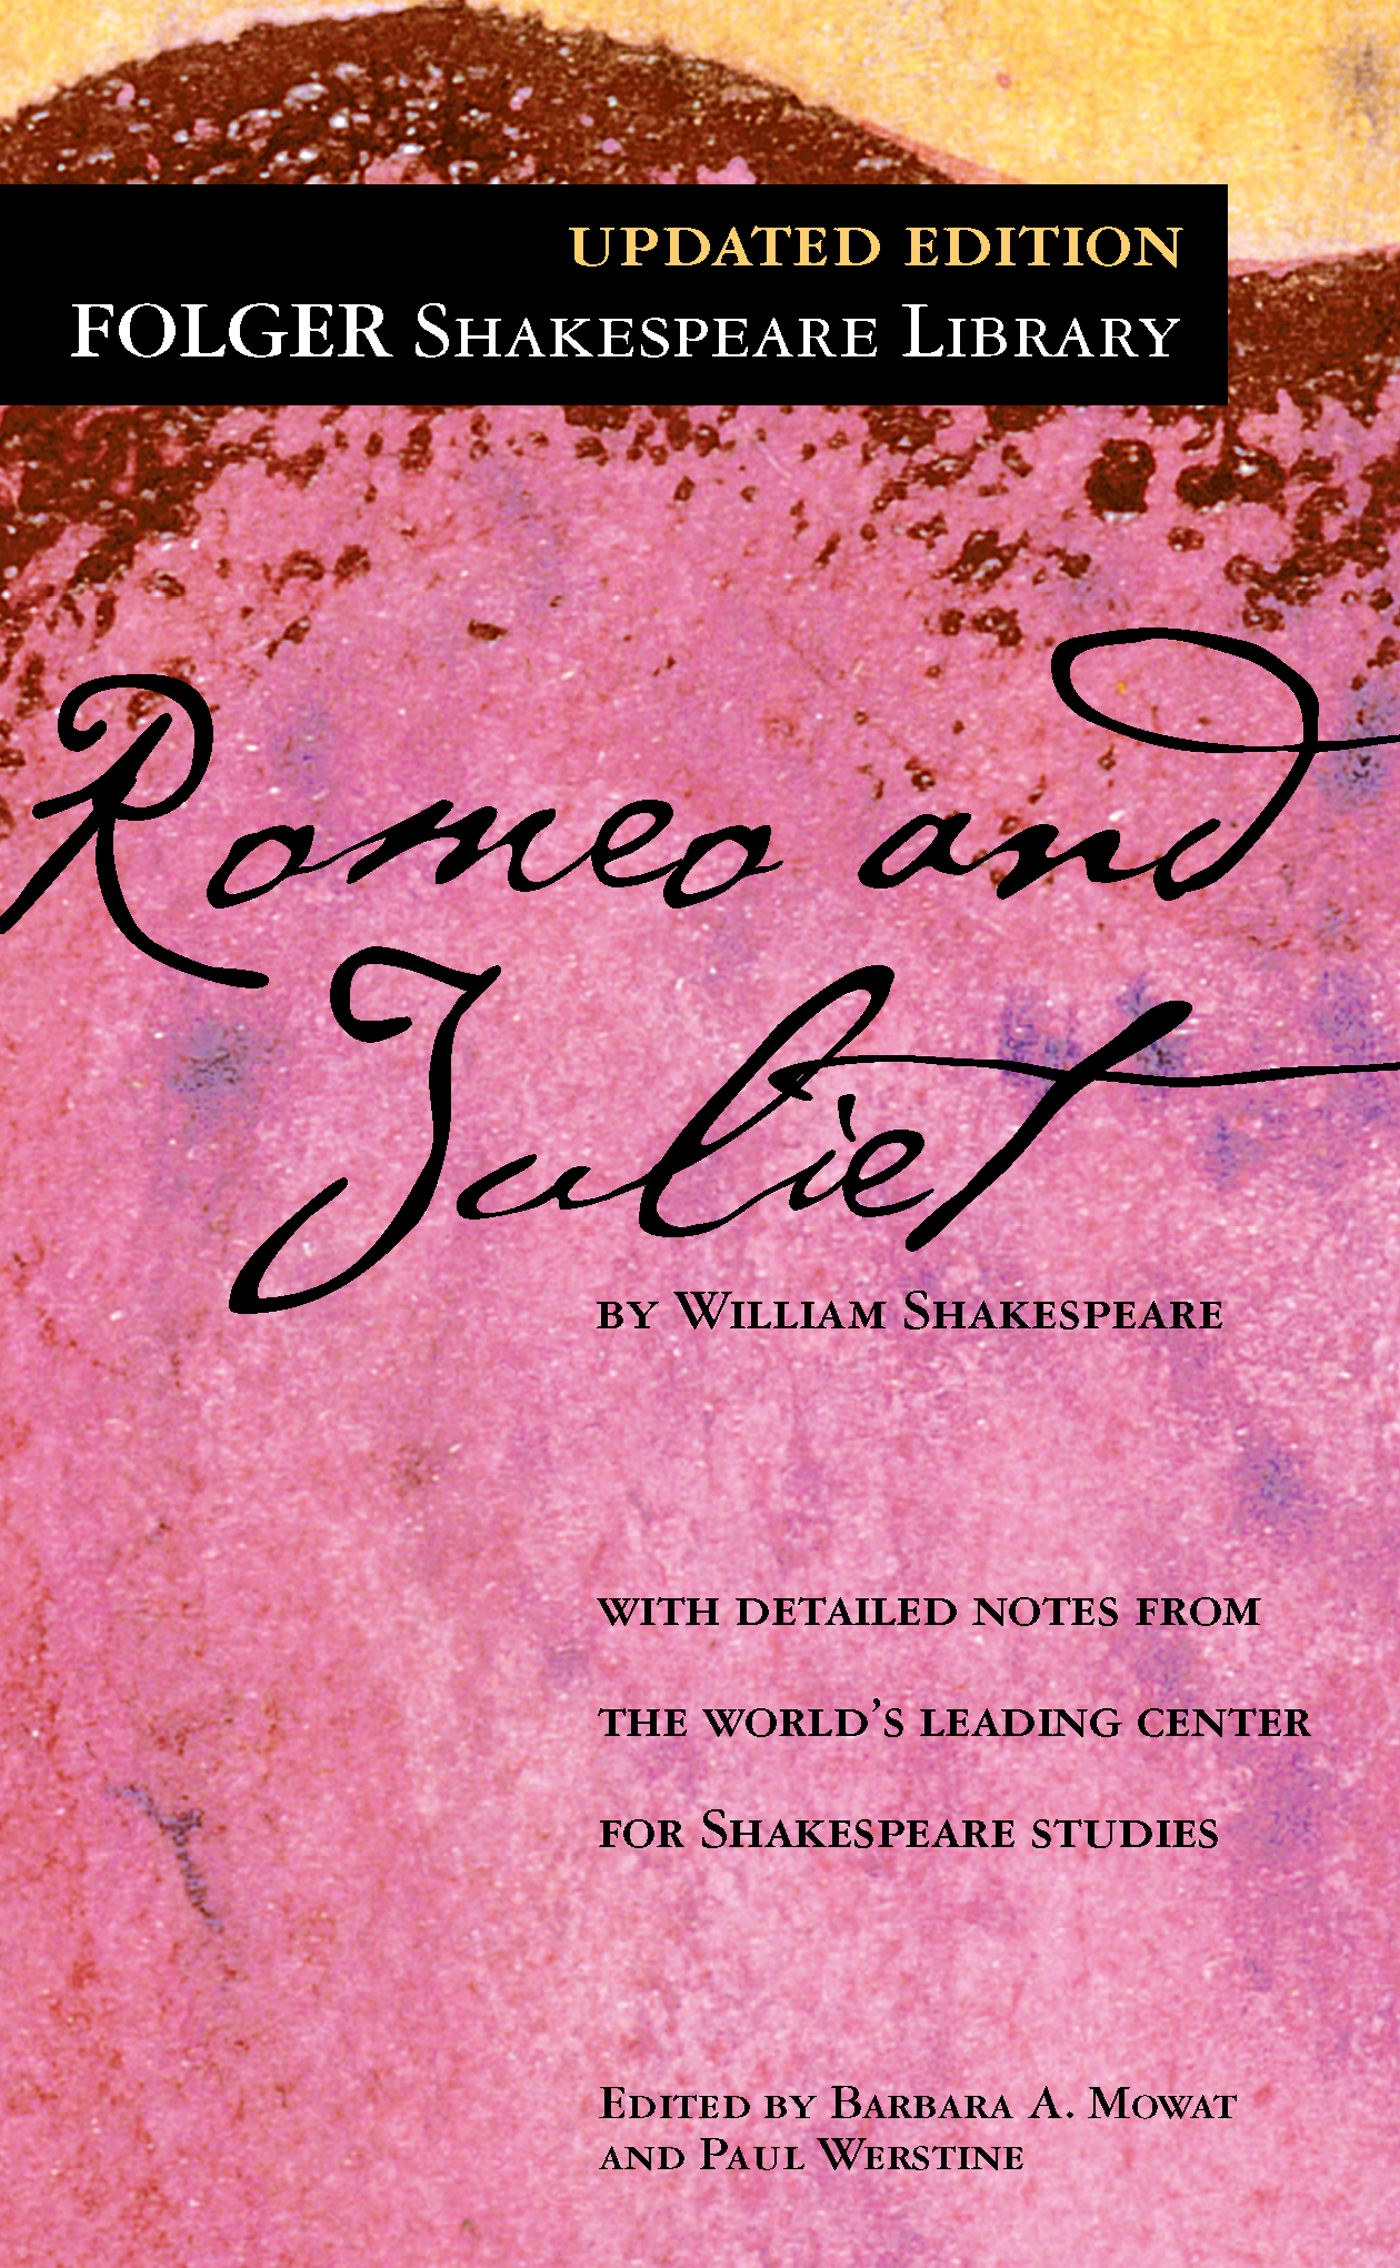 an analysis of the love and destruction in romeo and juliet a play by william shakespeare The feminist approach in the story romeo and juliet by william shakespeare written by : sylvia purimas 2013139002 final test of literary critism lecturer : agustinus hariyana, ss, msi i introduction anecdote romeo and juliet is a tragedy written by william shakespeare early in his career about two young star-crossed lovers whose deaths ultimately reconcile.